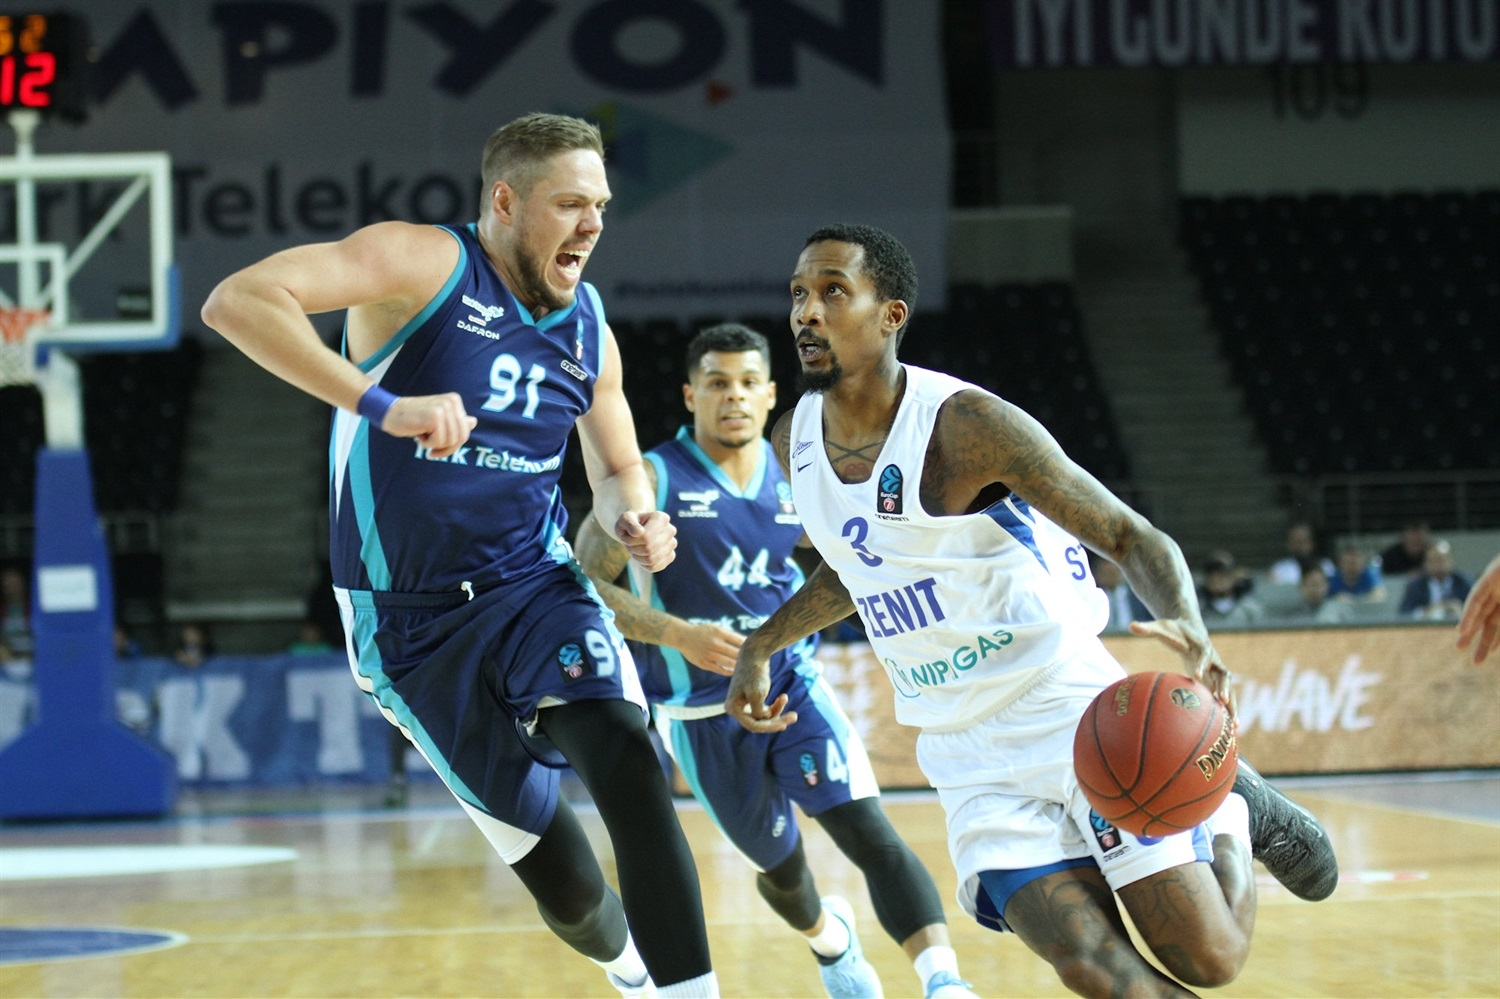 Brandon Jennings - Zenit St Petersburg (photo Turk Telekom) - EC18